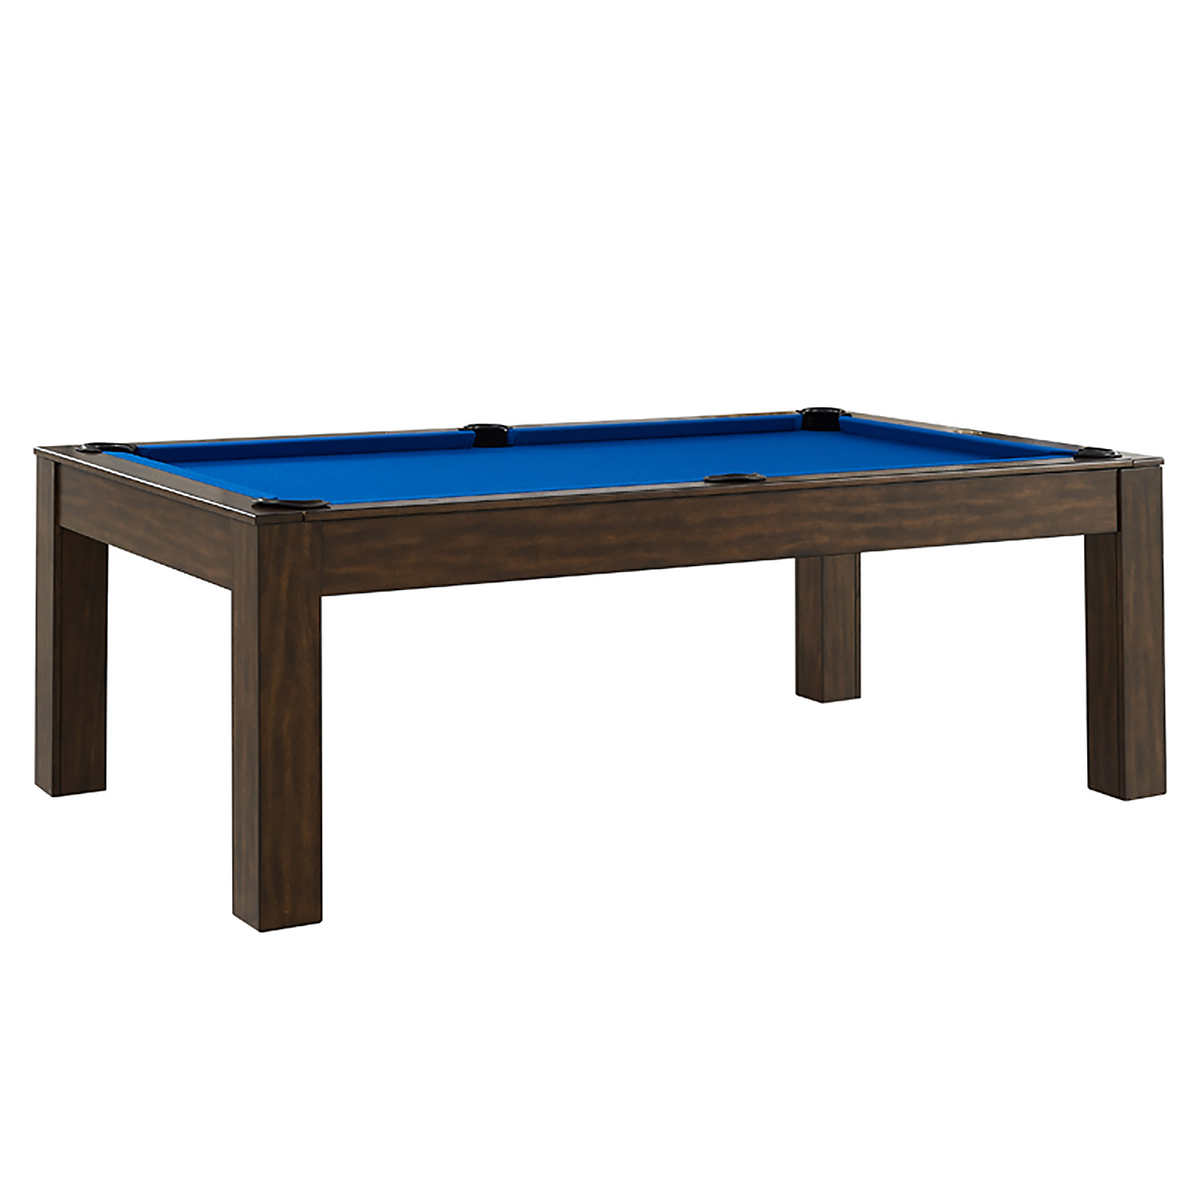 Beringer Rivo 7ft All in one Slate Pool Table with Dining top and Table Tennis